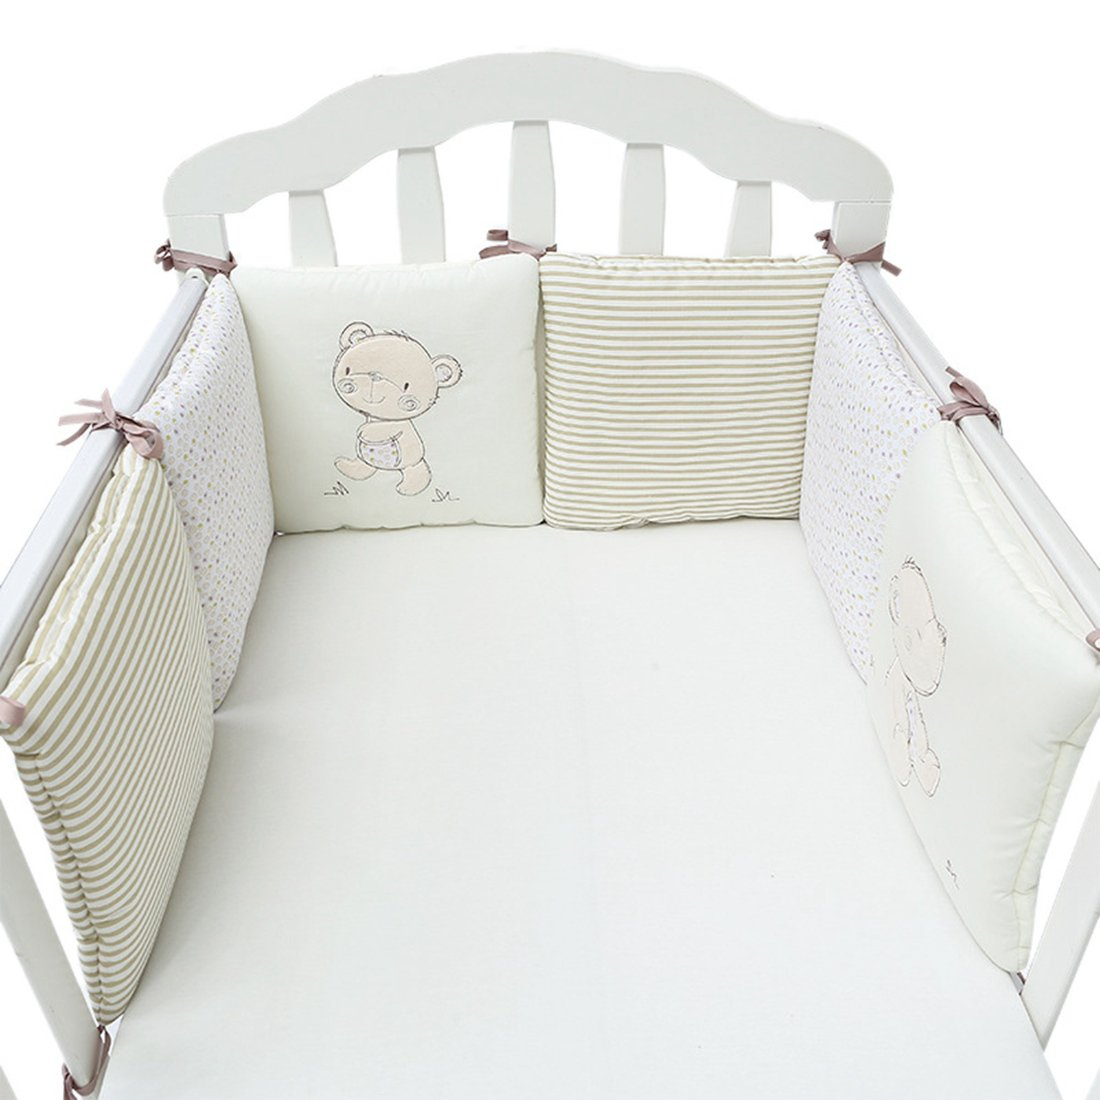 Hengfey Cotton Breathable Baby Crib Bumpers Beige 6 PCS by FREAHAP R (Image #1)